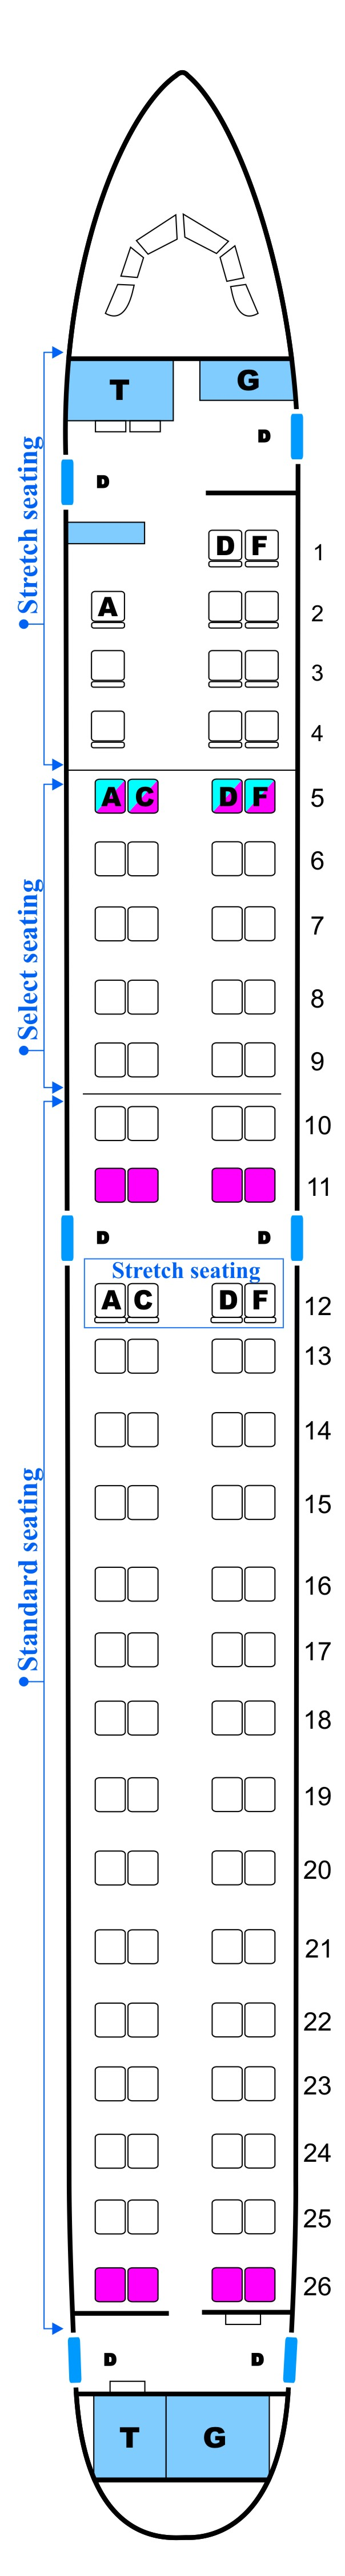 Seat map for Midwest Airlines Embraer E190 Config. B